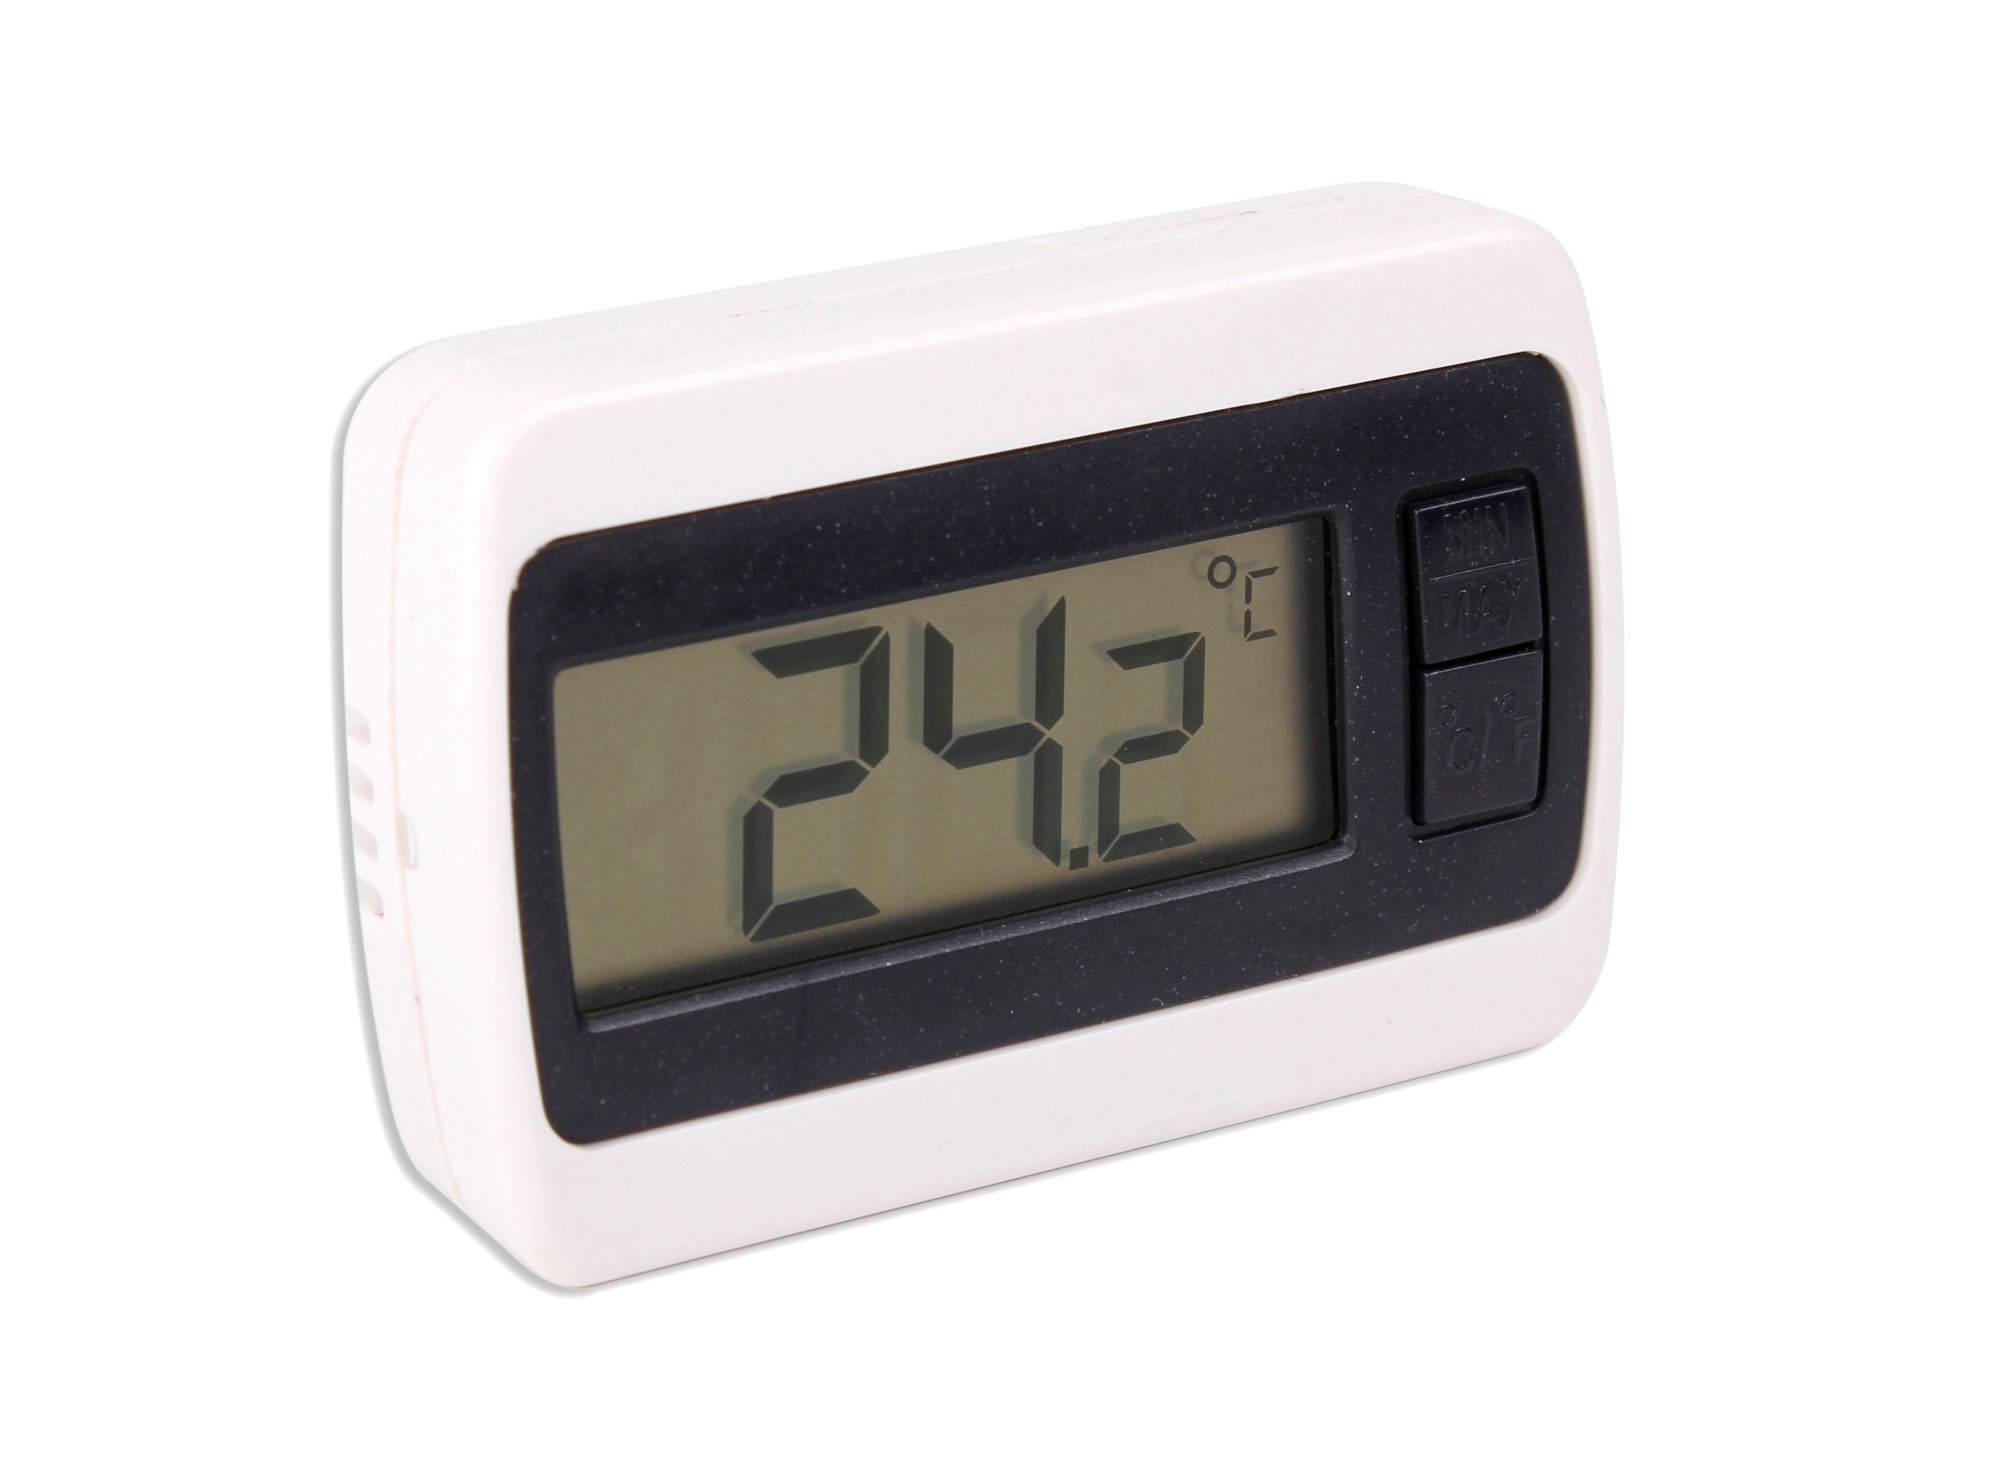 Nursery Baby Child Room Temperature Monitor Digital